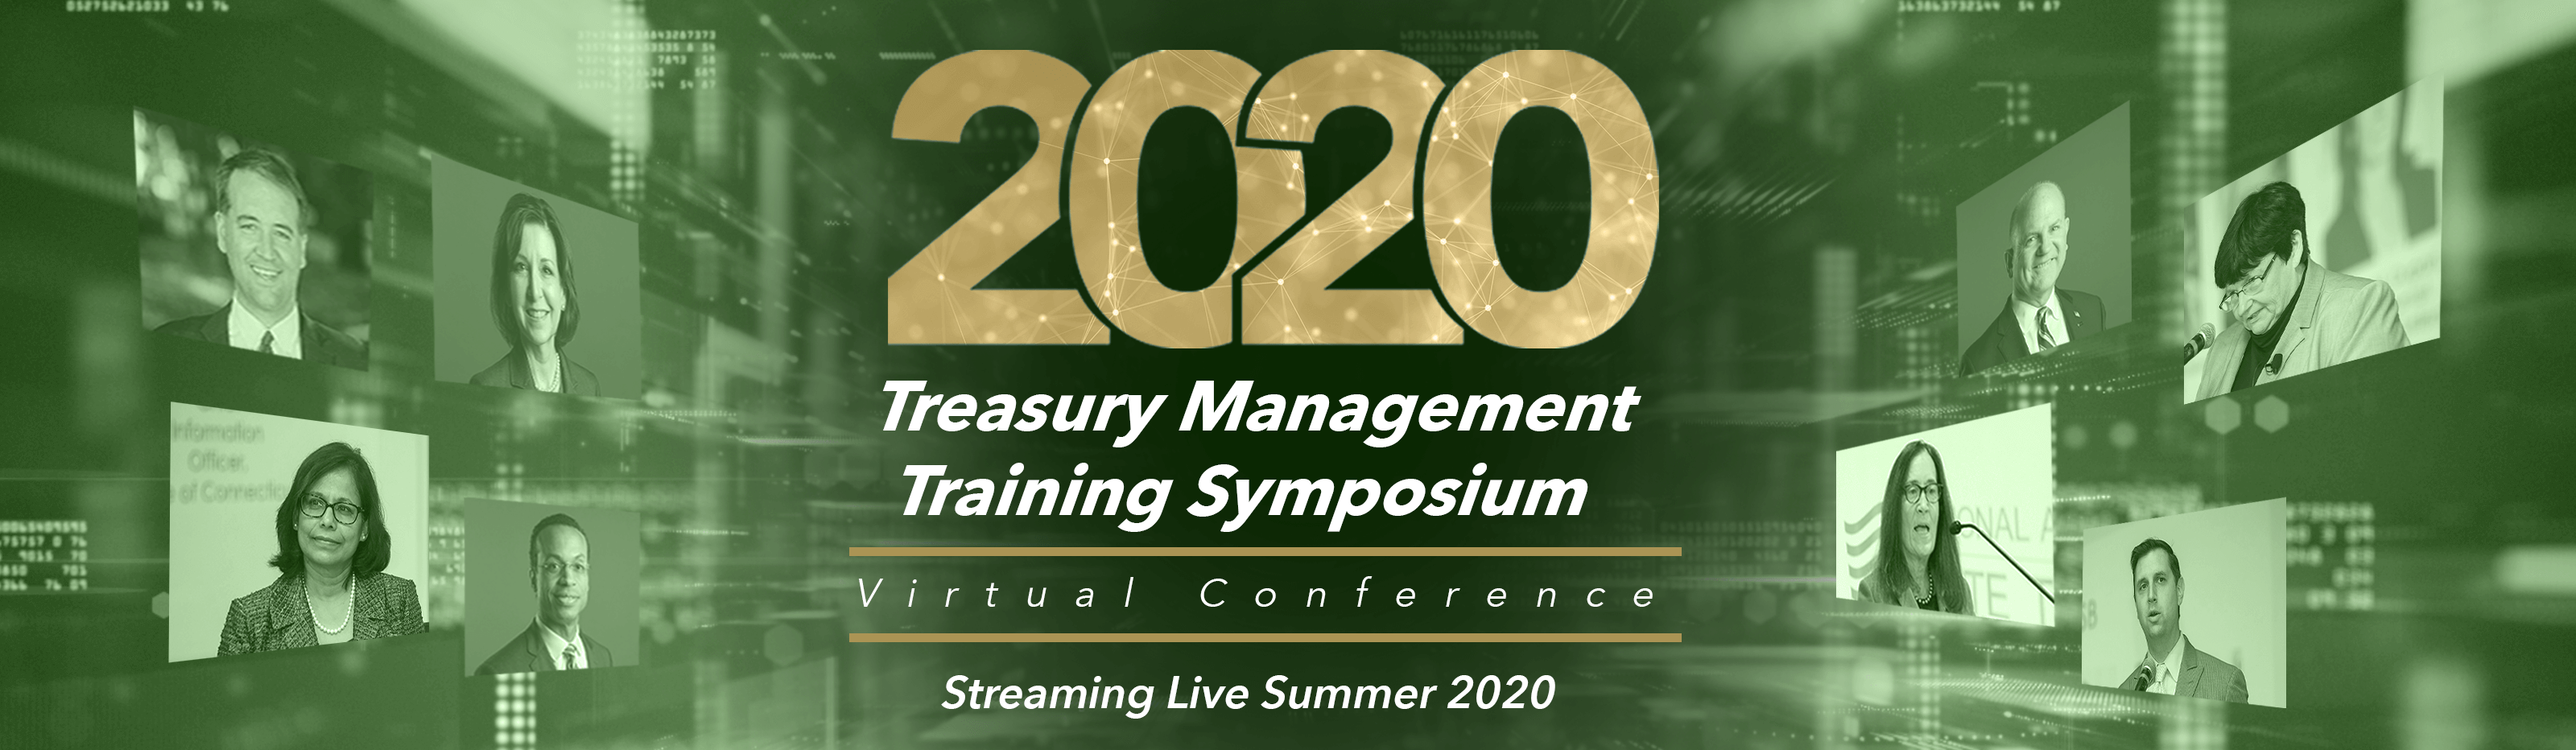 2020 Treasury Management Training Symposium